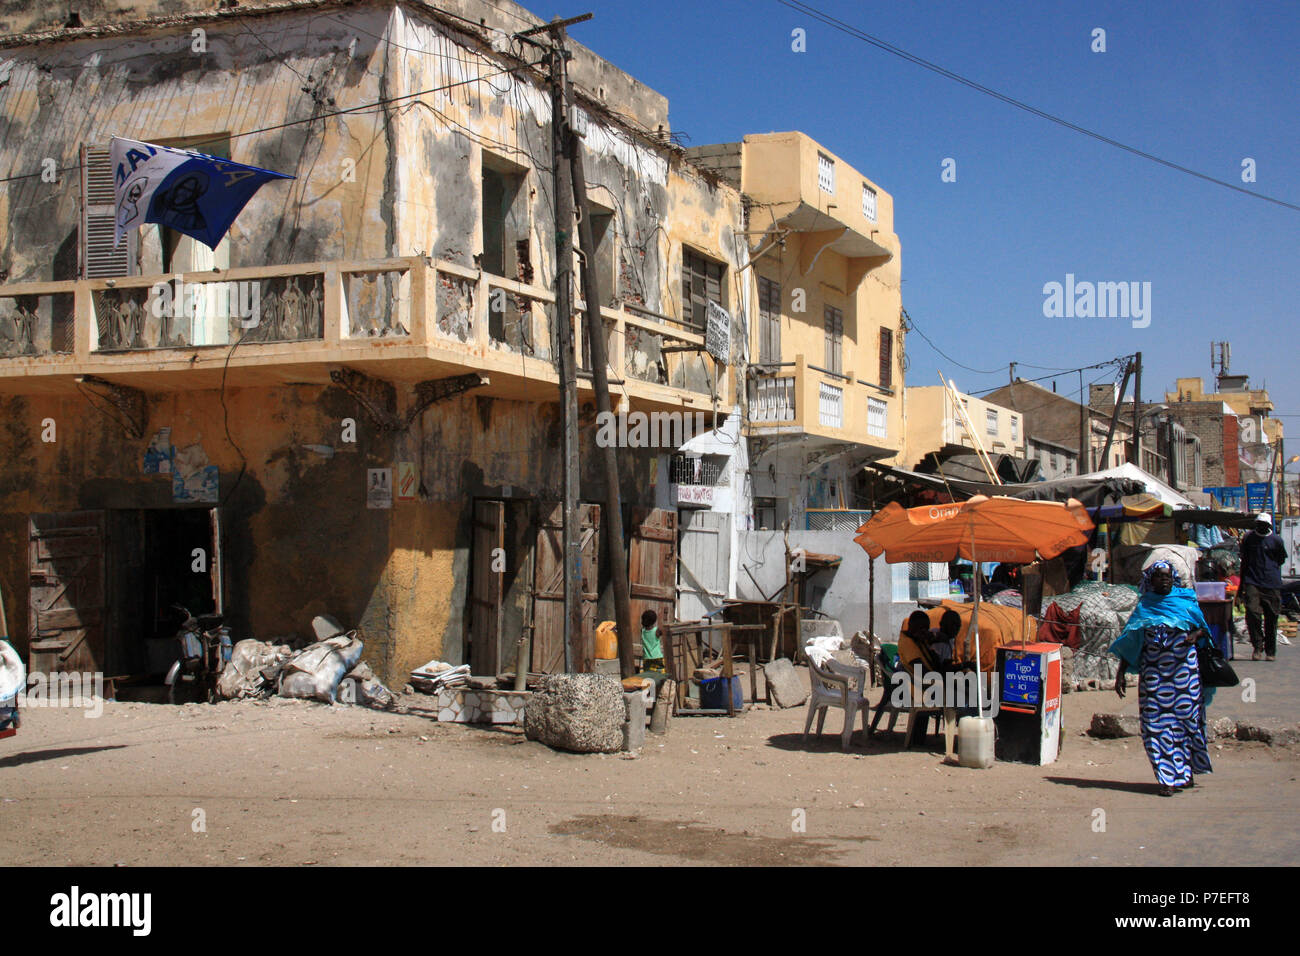 Decrepit house and typical scene on the street in Saint-Louis-du-Sénégal - Stock Image